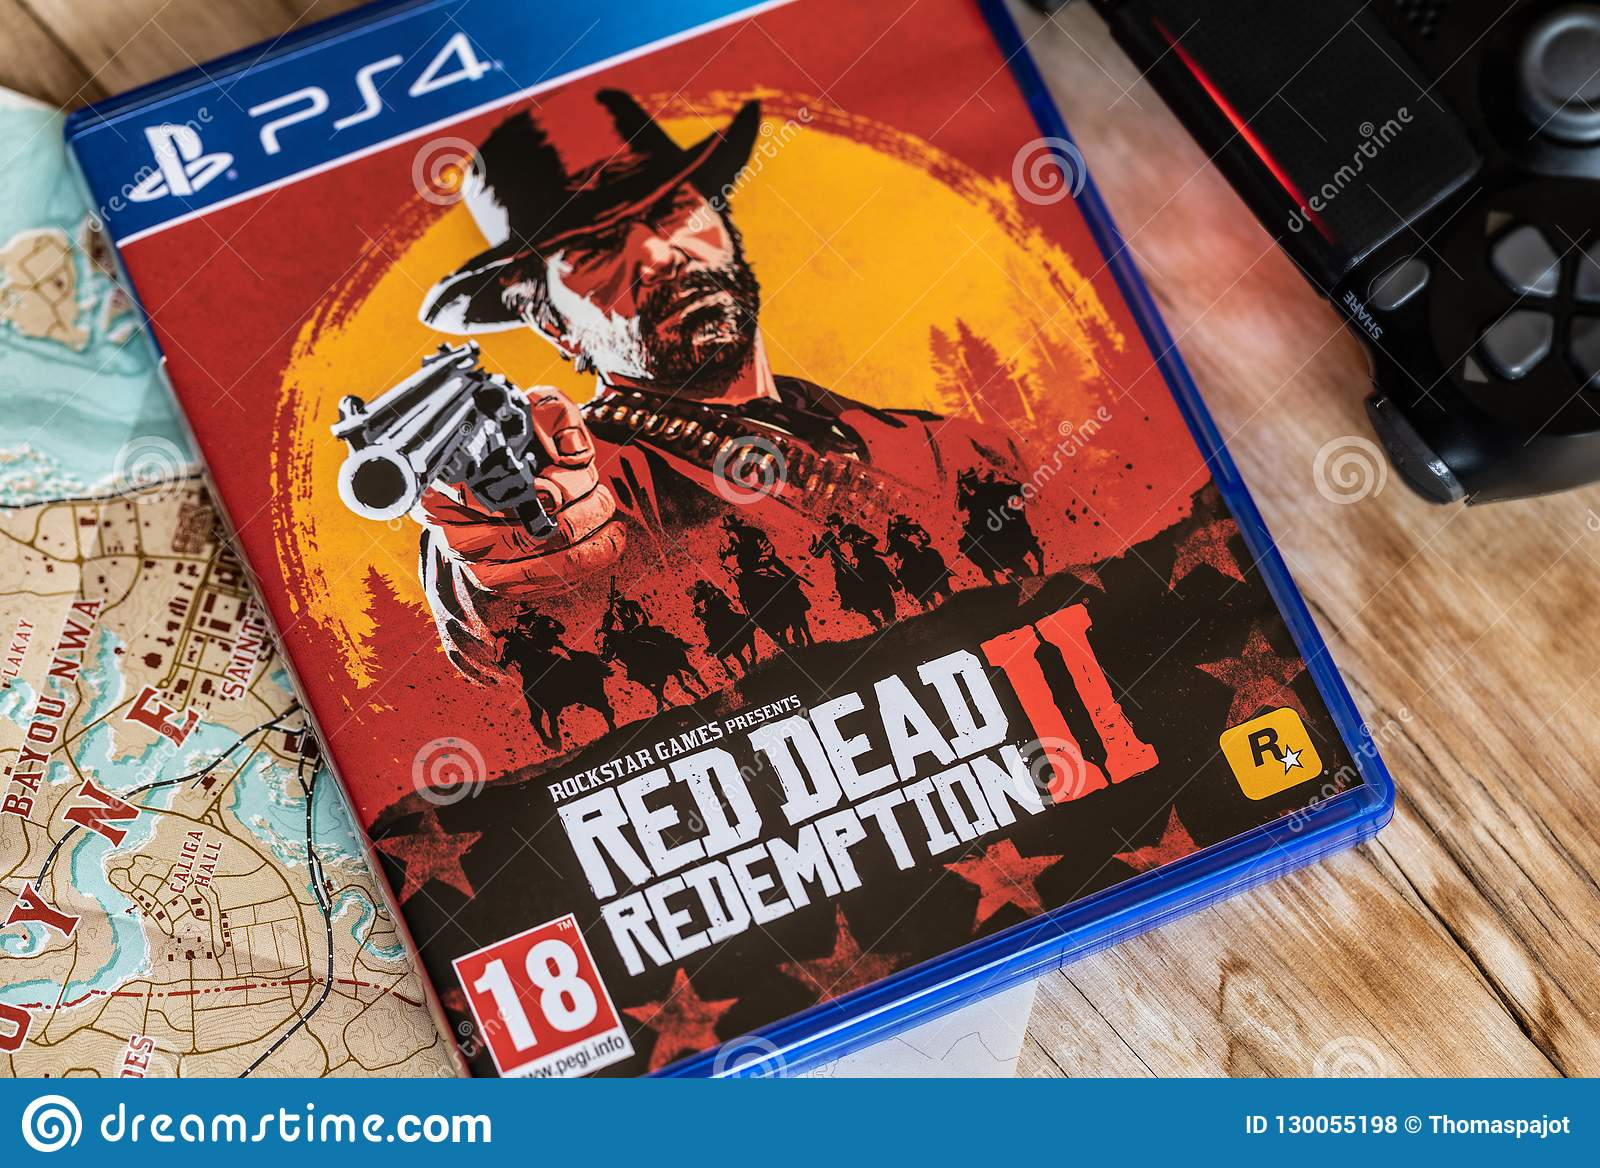 Red Dead Redemption 2 Game Release On October 26,2018